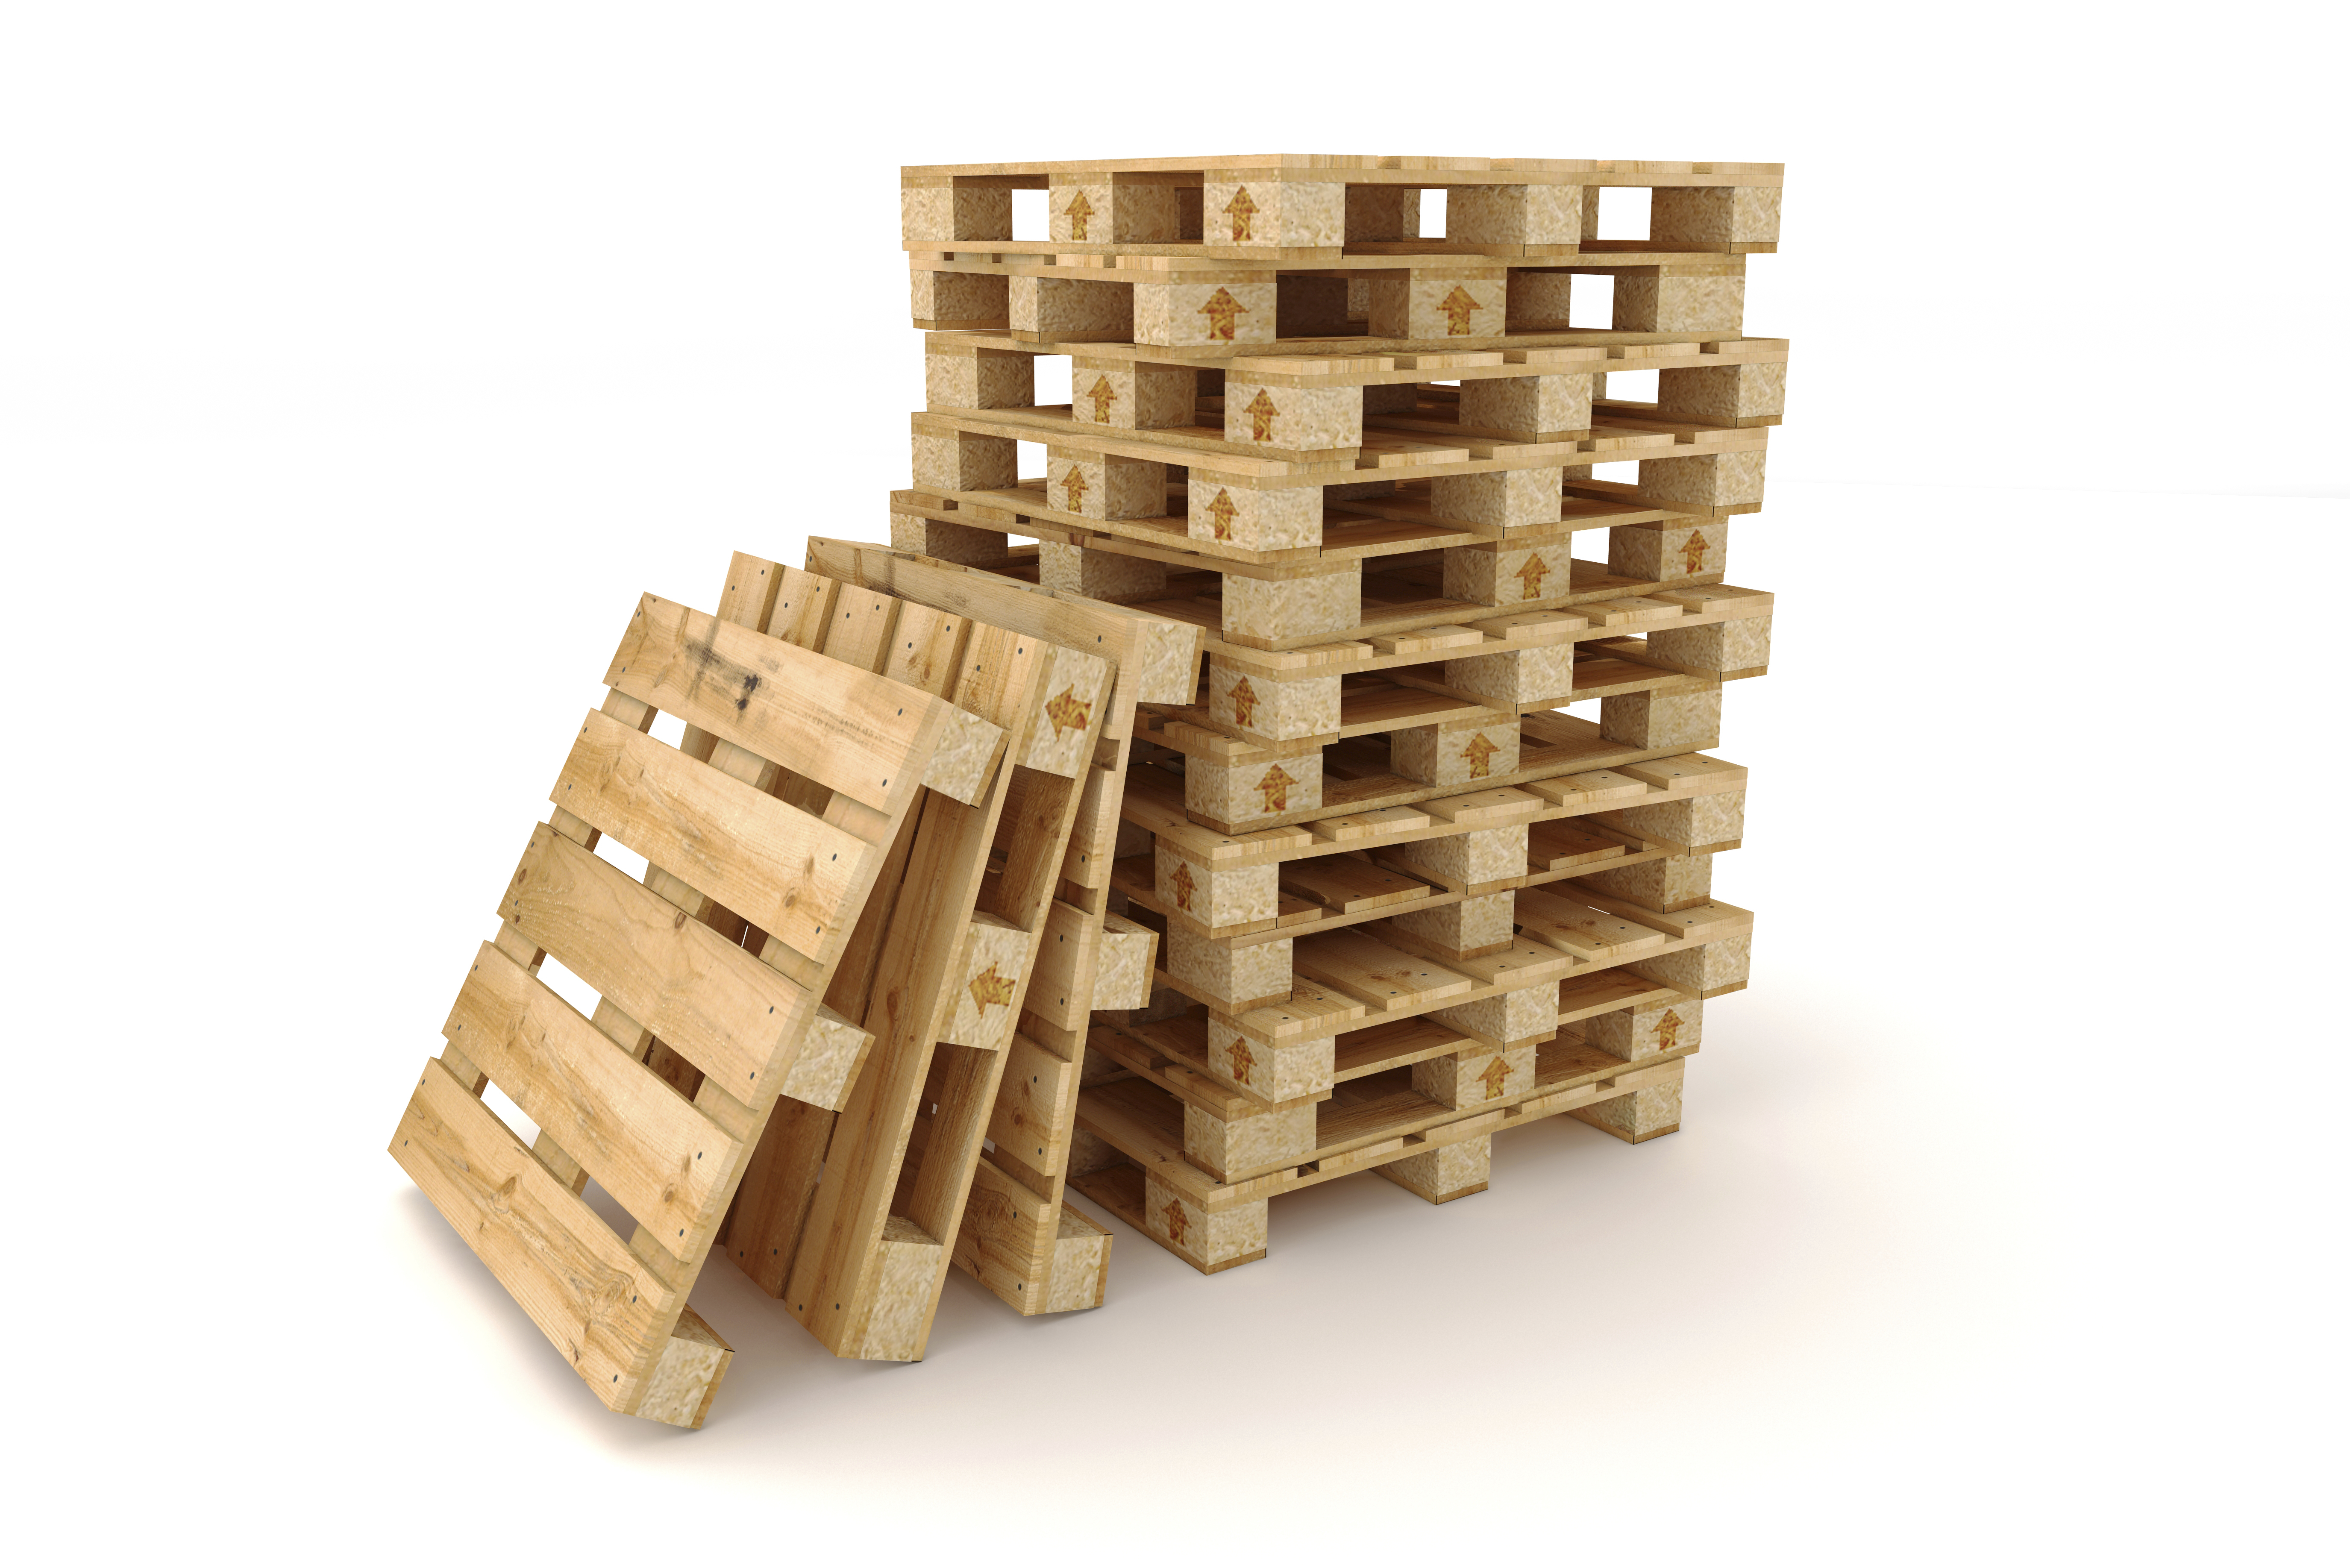 Ergonomics research has led to specialized equipment to prevent injuries from common repetitive motions in pallet manufacturing tasks